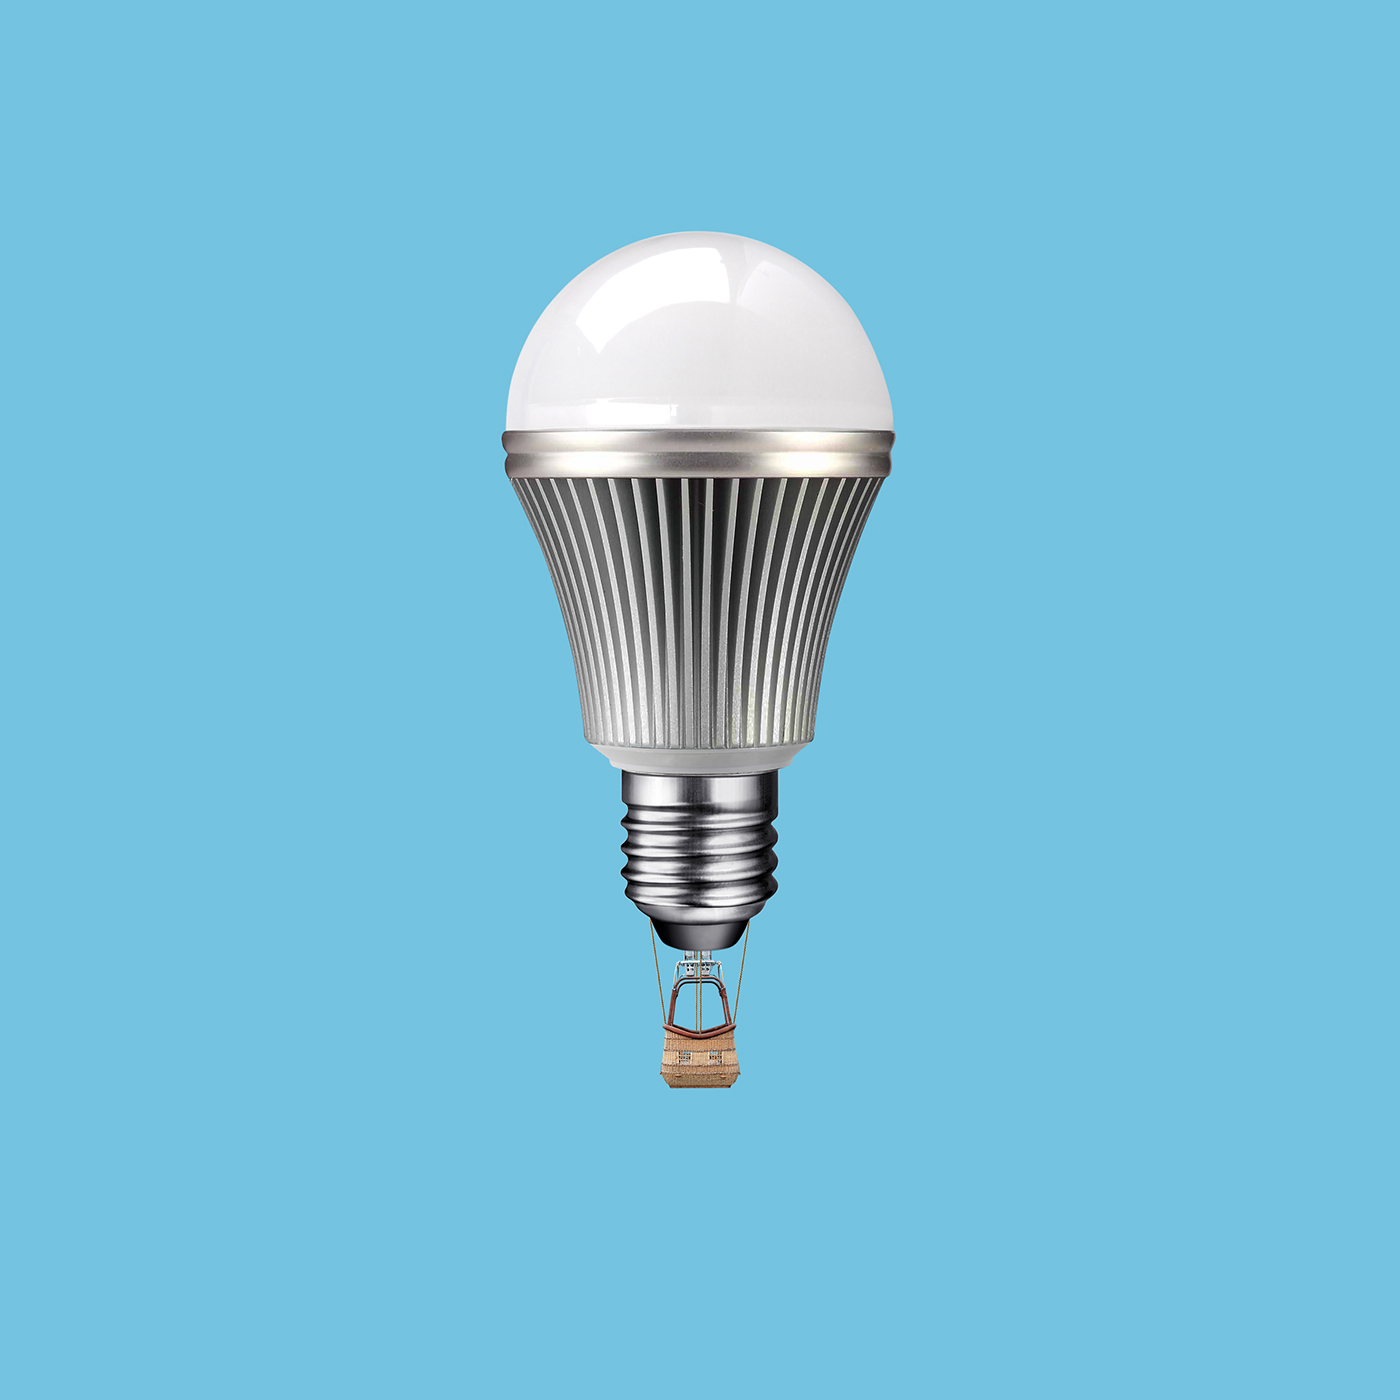 hot air balloon led lamp photo montage photoshop